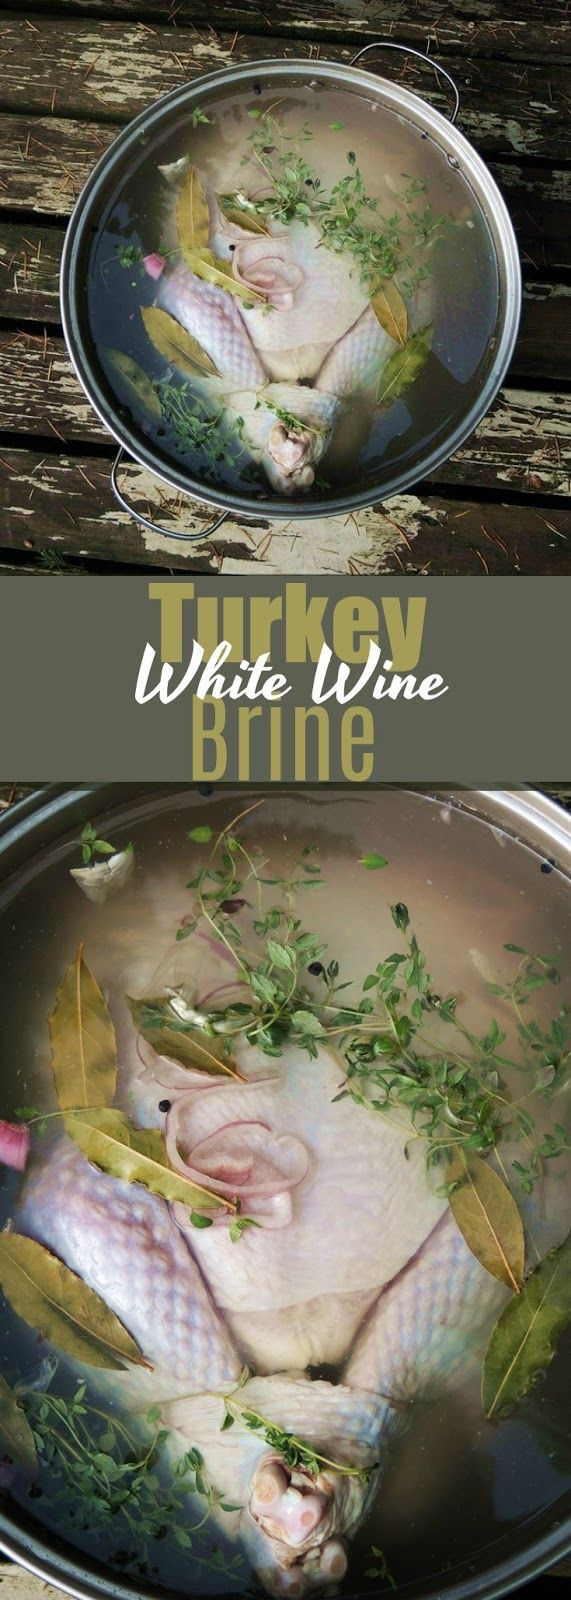 White Wine Turkey Brine - With white wine, spices, herbs, and citrus, this is seriously the BEST brine for your holiday turkey. From www.bobbiskozykitchen.com #wine #thanksgiving #christmas #turkey